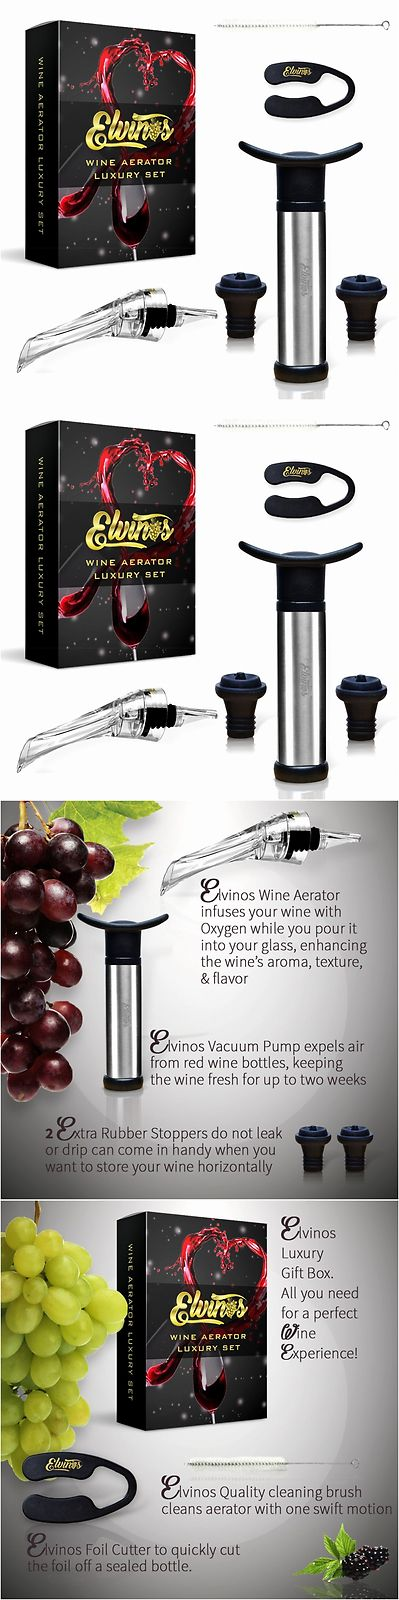 Bottle Stoppers and Corks 63503: Elvinos Premium Wine Aerator Wine Vacuum Pump Saver Wine Pourer Spout Set New -> BUY IT NOW ONLY: $69.56 on eBay!